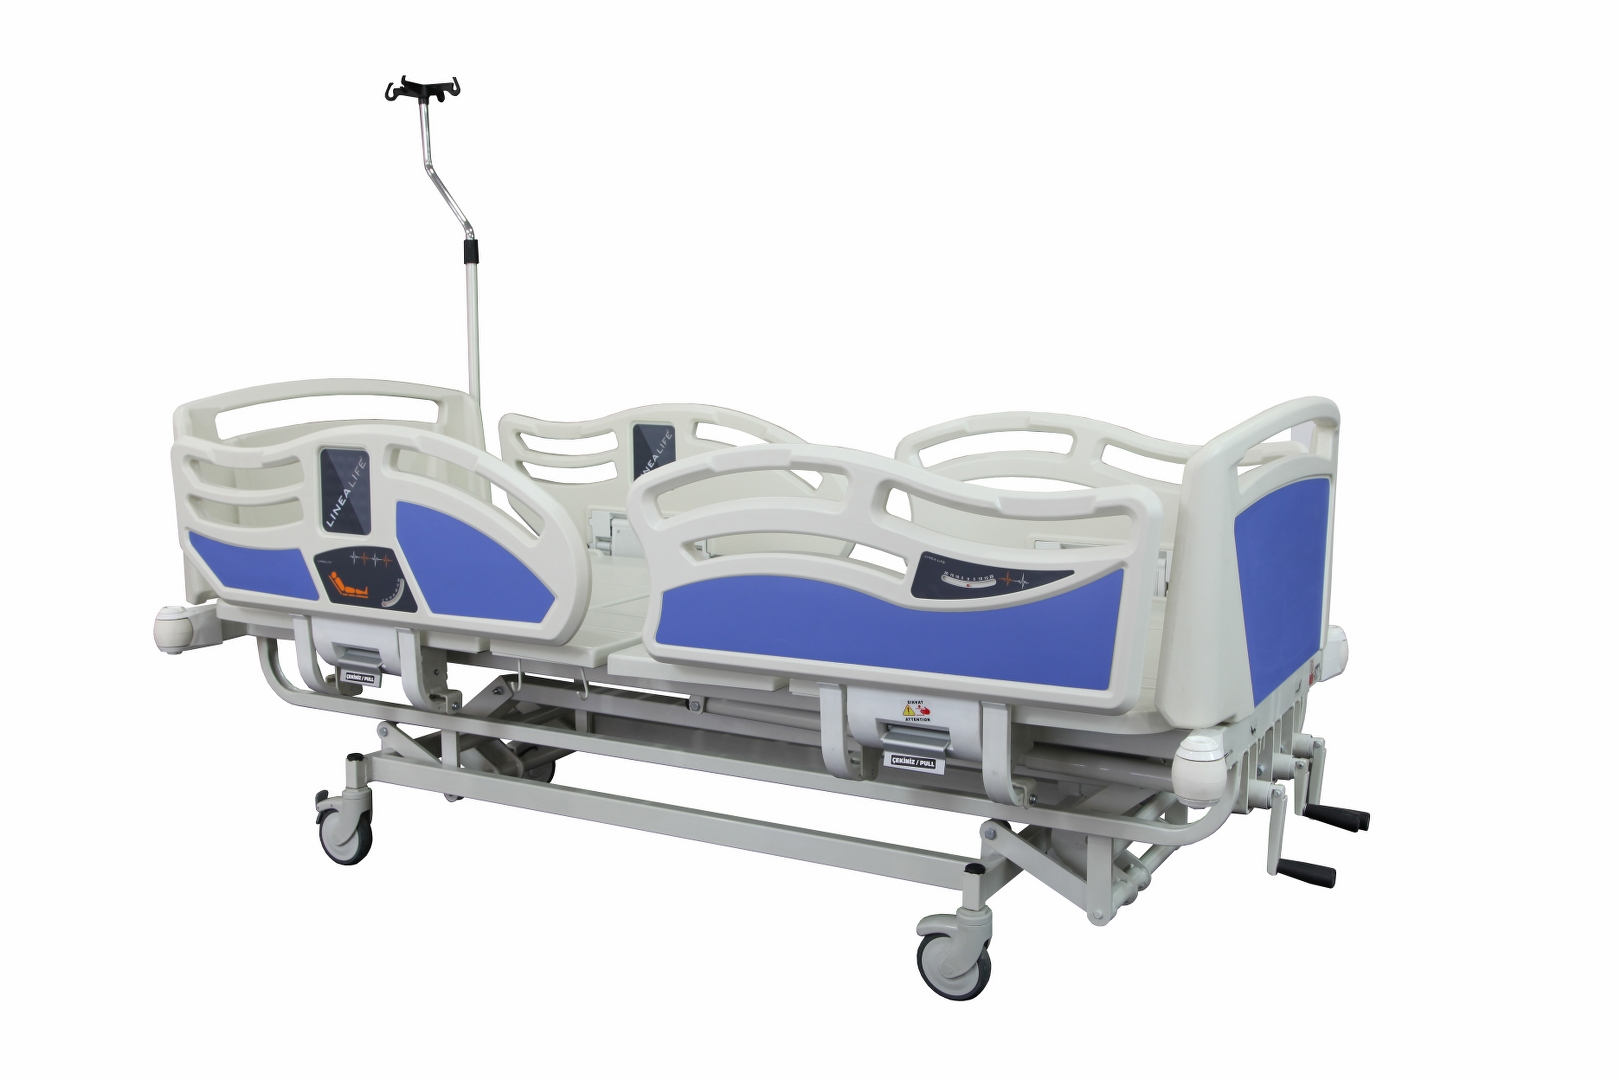 HKM-Y30 MECHANICAL HOSPITAL BED WITH 3 ADJUSTMENT